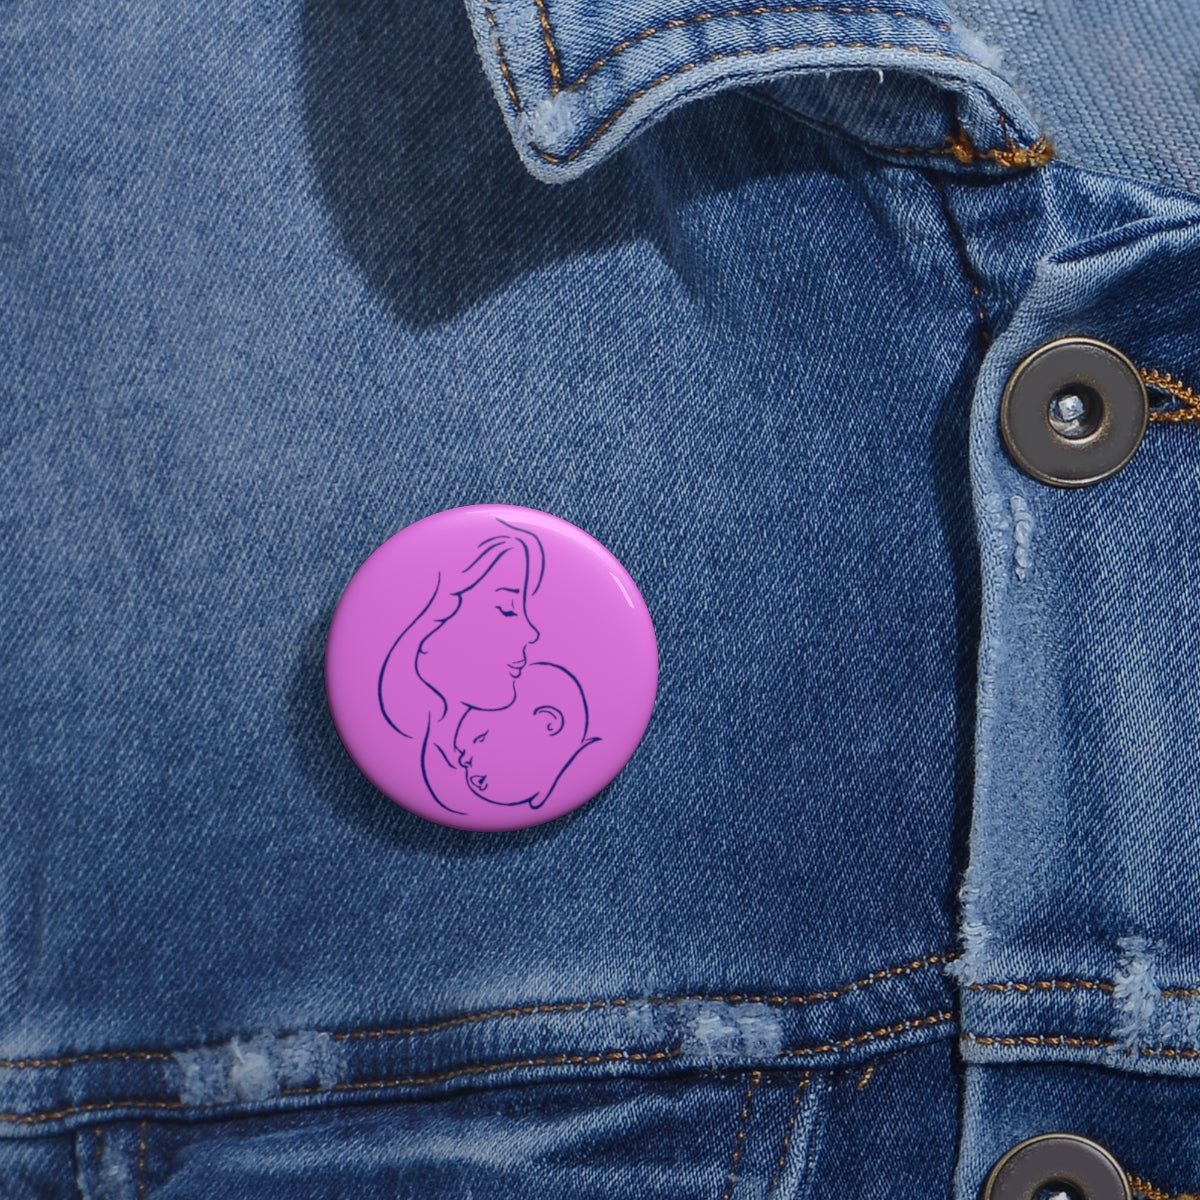 Pro-Life Pink Pin Buttons